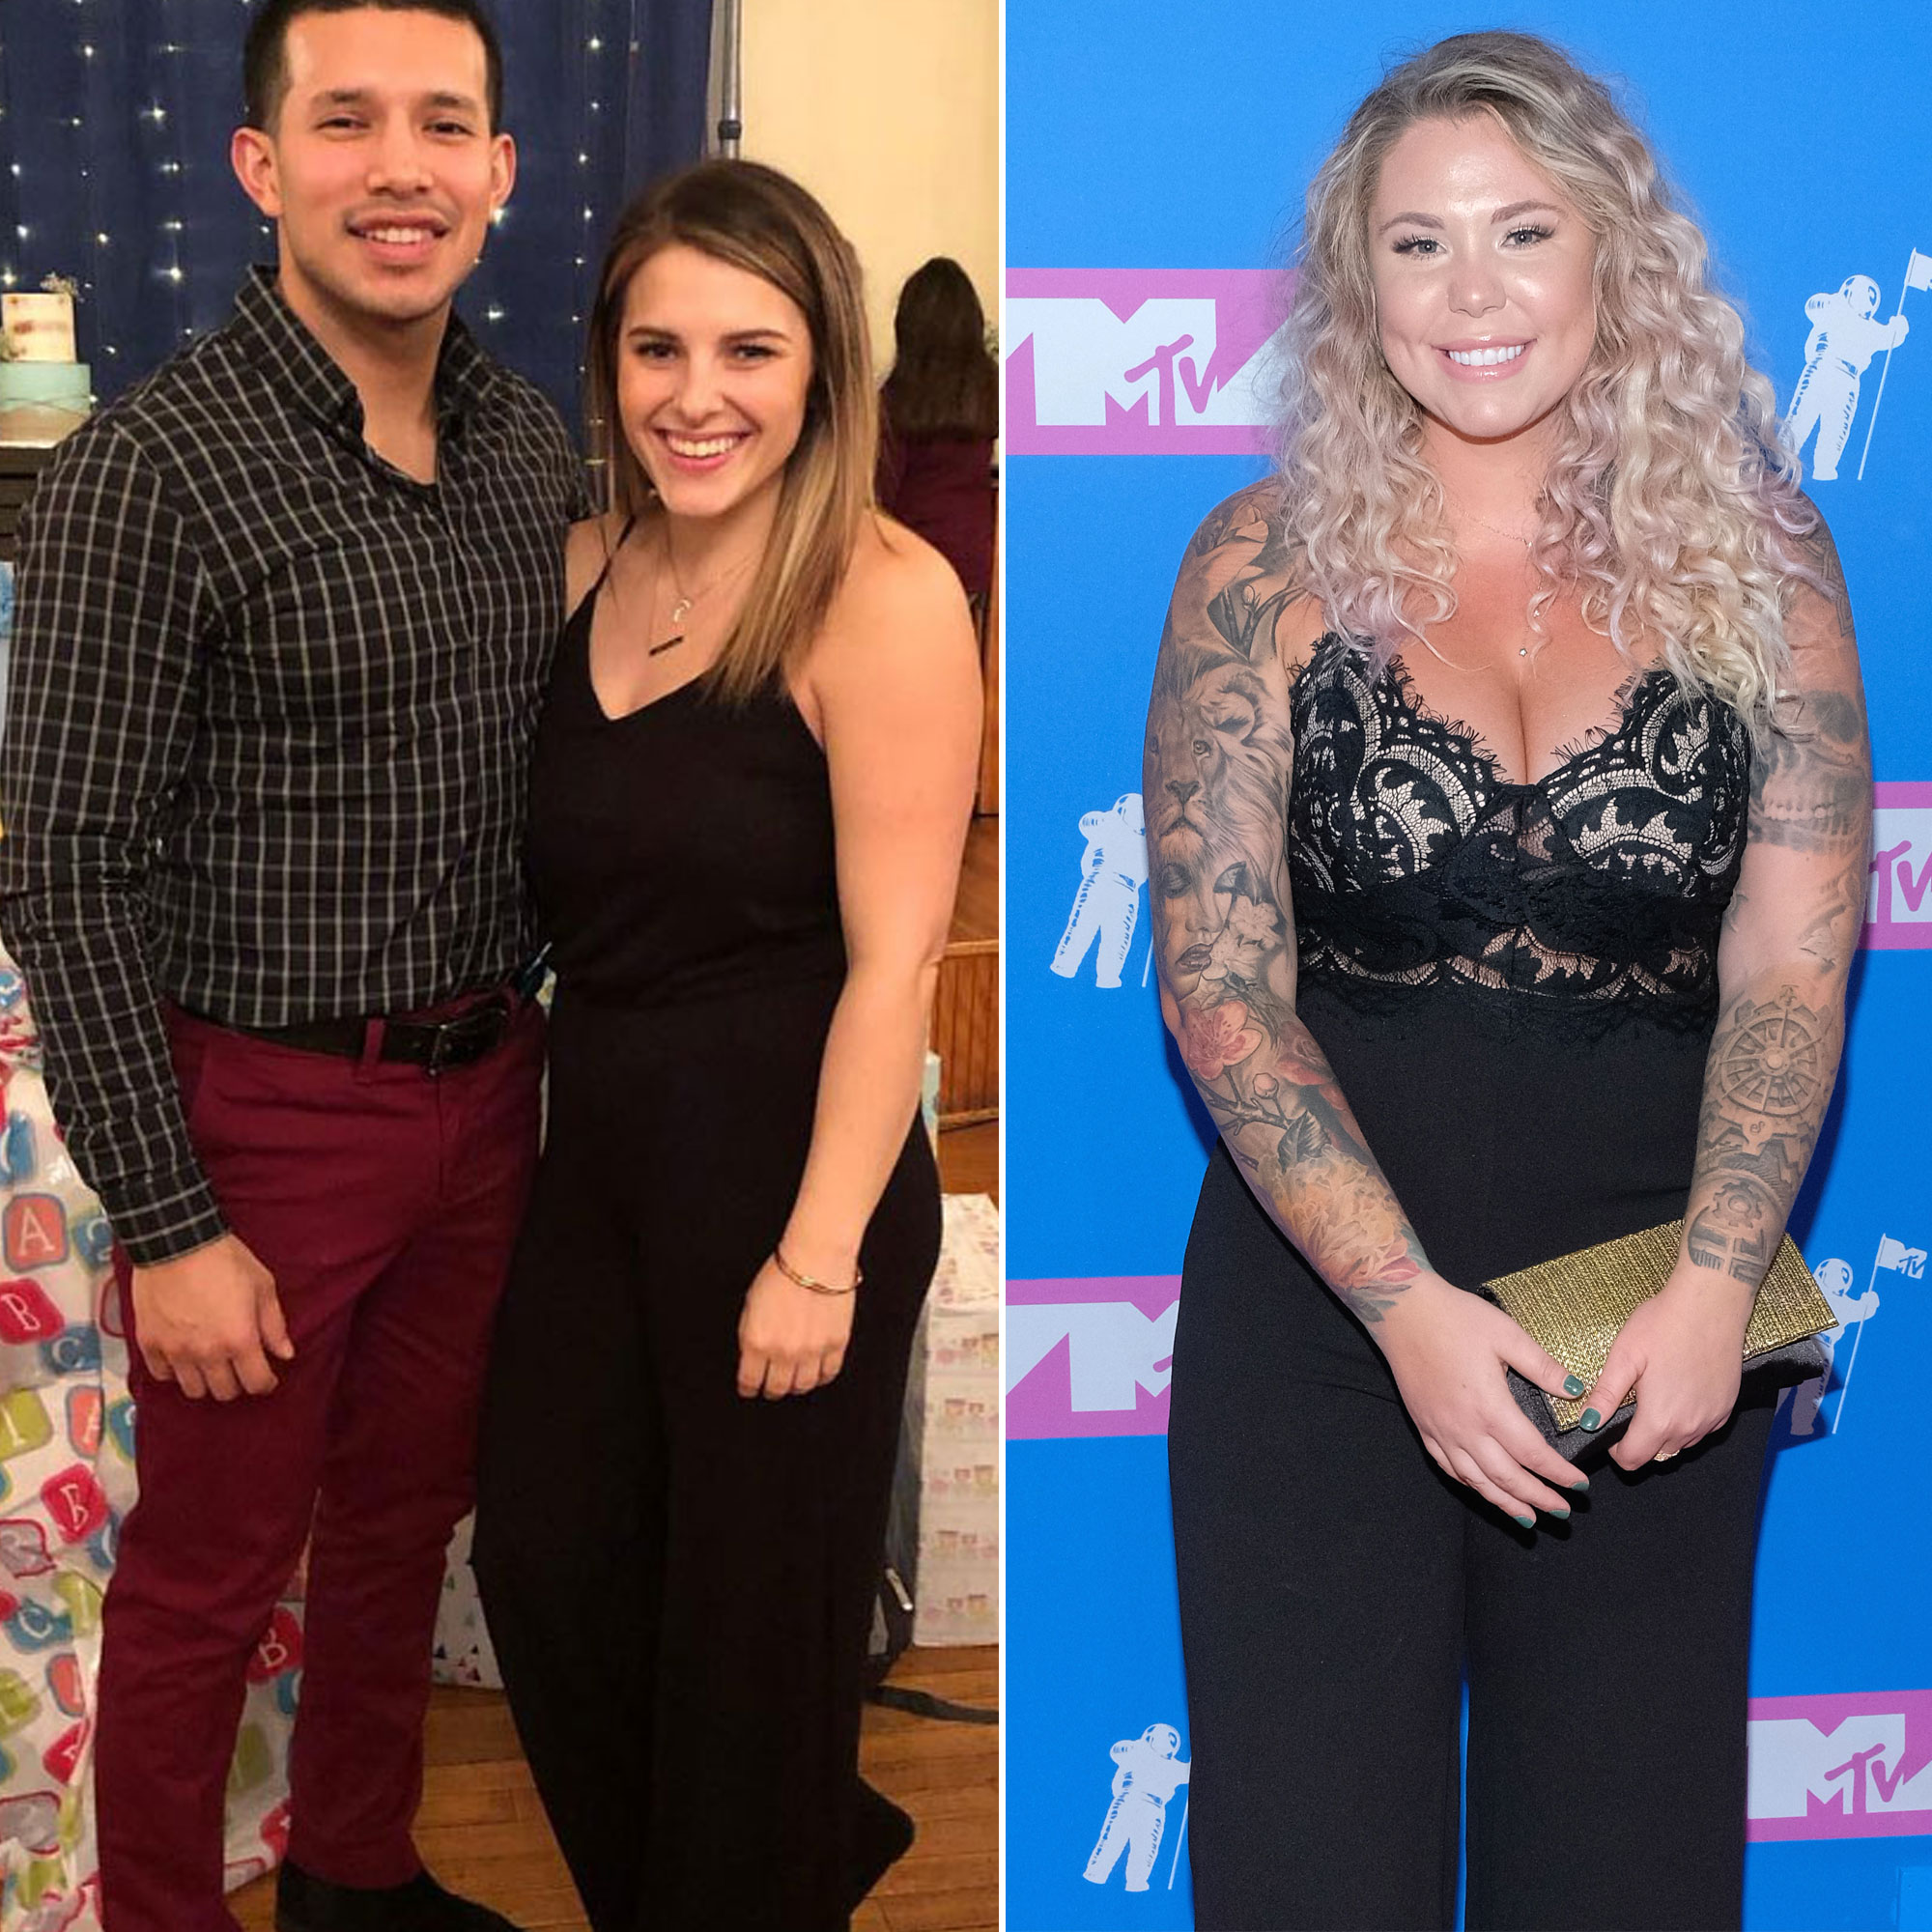 "Javi Marroquin Propose to GF Lauren Comeau This Year - Marroquin said that he sees his ex Kailyn Lowry , with whom he shares son Lincoln, 5, and Comeau hanging out in the near future. ""I definitely see that happening soon. I think [Kailyn] …. wanted me and her to have a good relationship where we weren't gonna fight … which we have."""